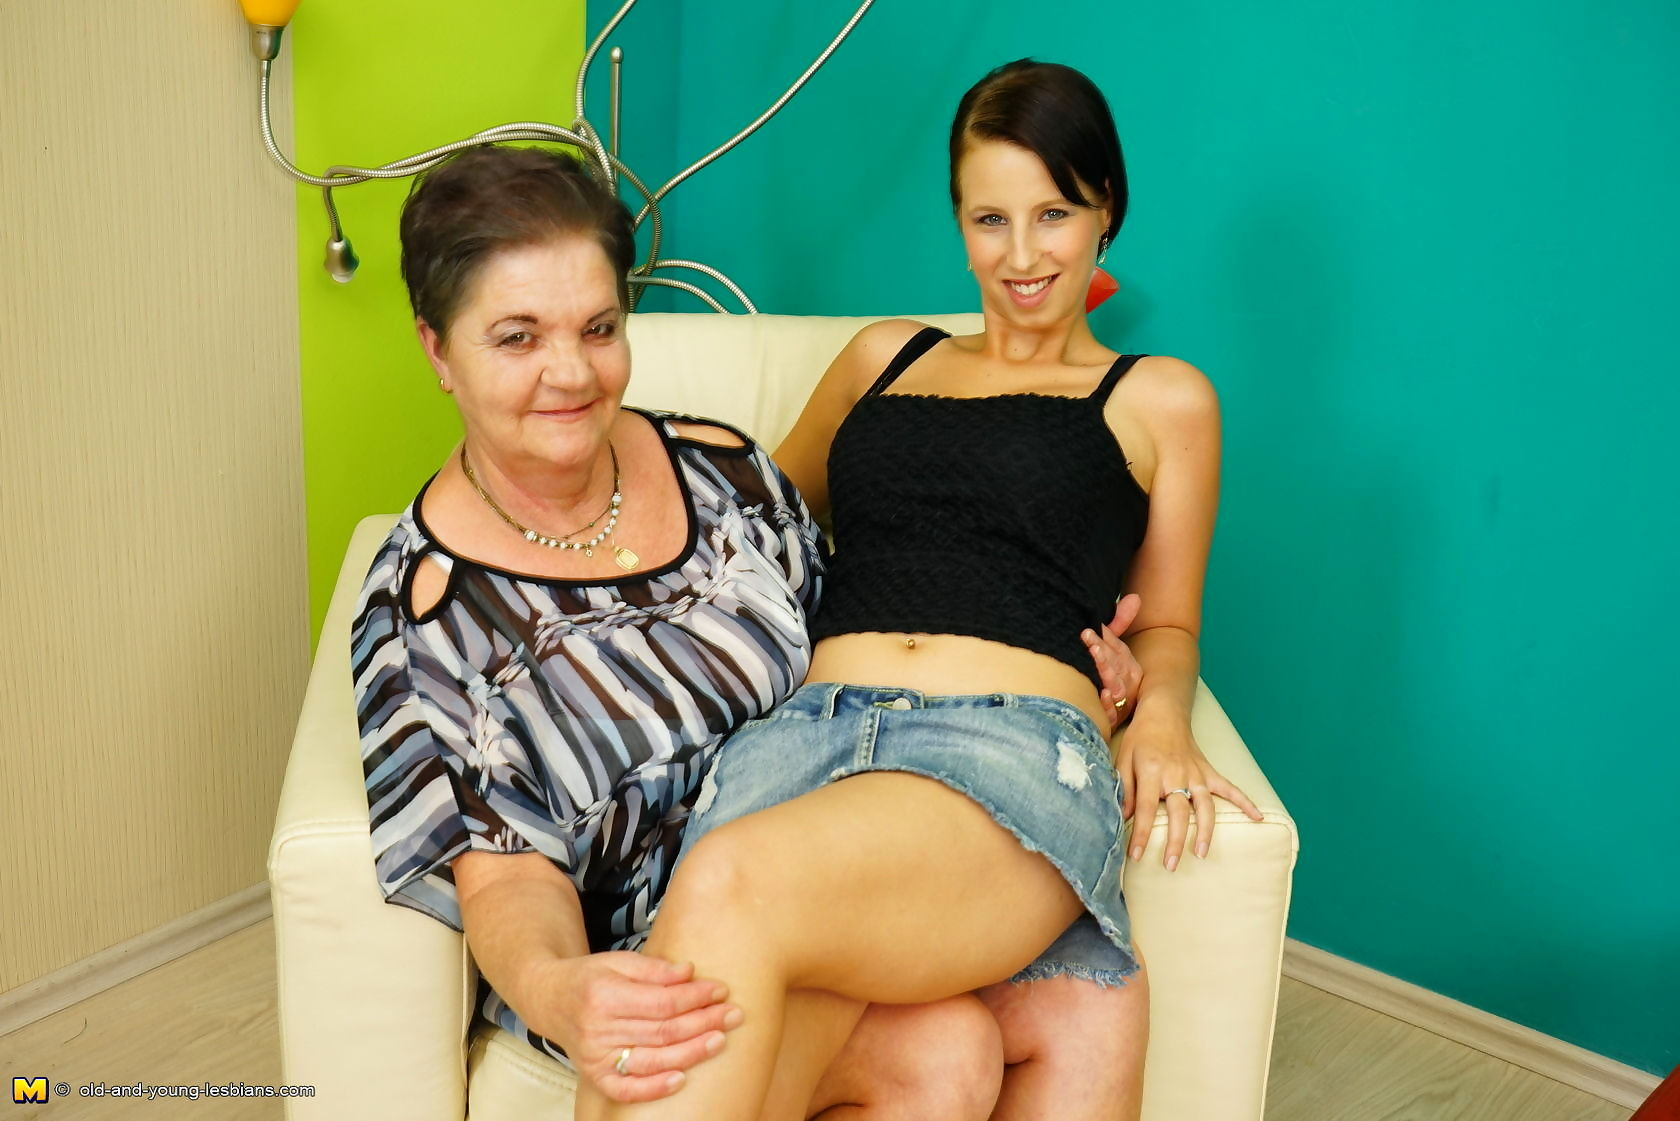 Horny old and young lesbian couple fooling around - part 3503